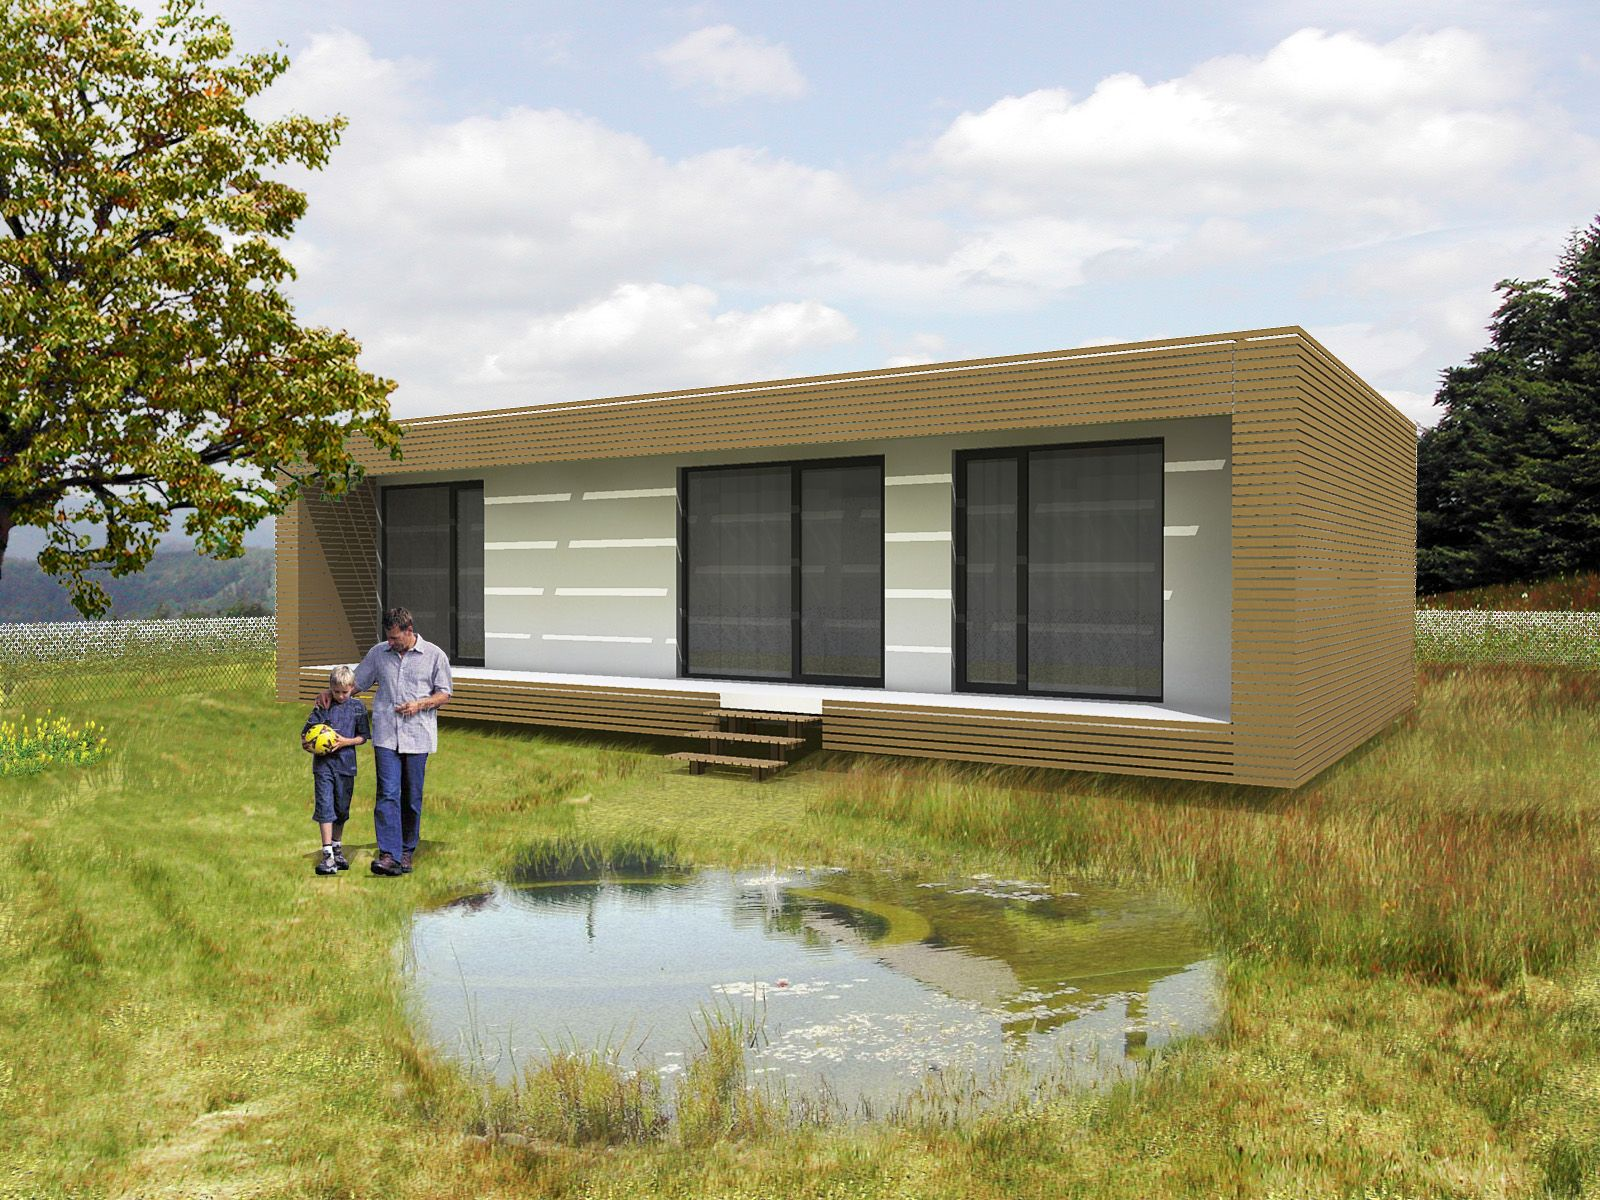 Surprising 17 Best Images About Clever Small House Designs On Pinterest Largest Home Design Picture Inspirations Pitcheantrous